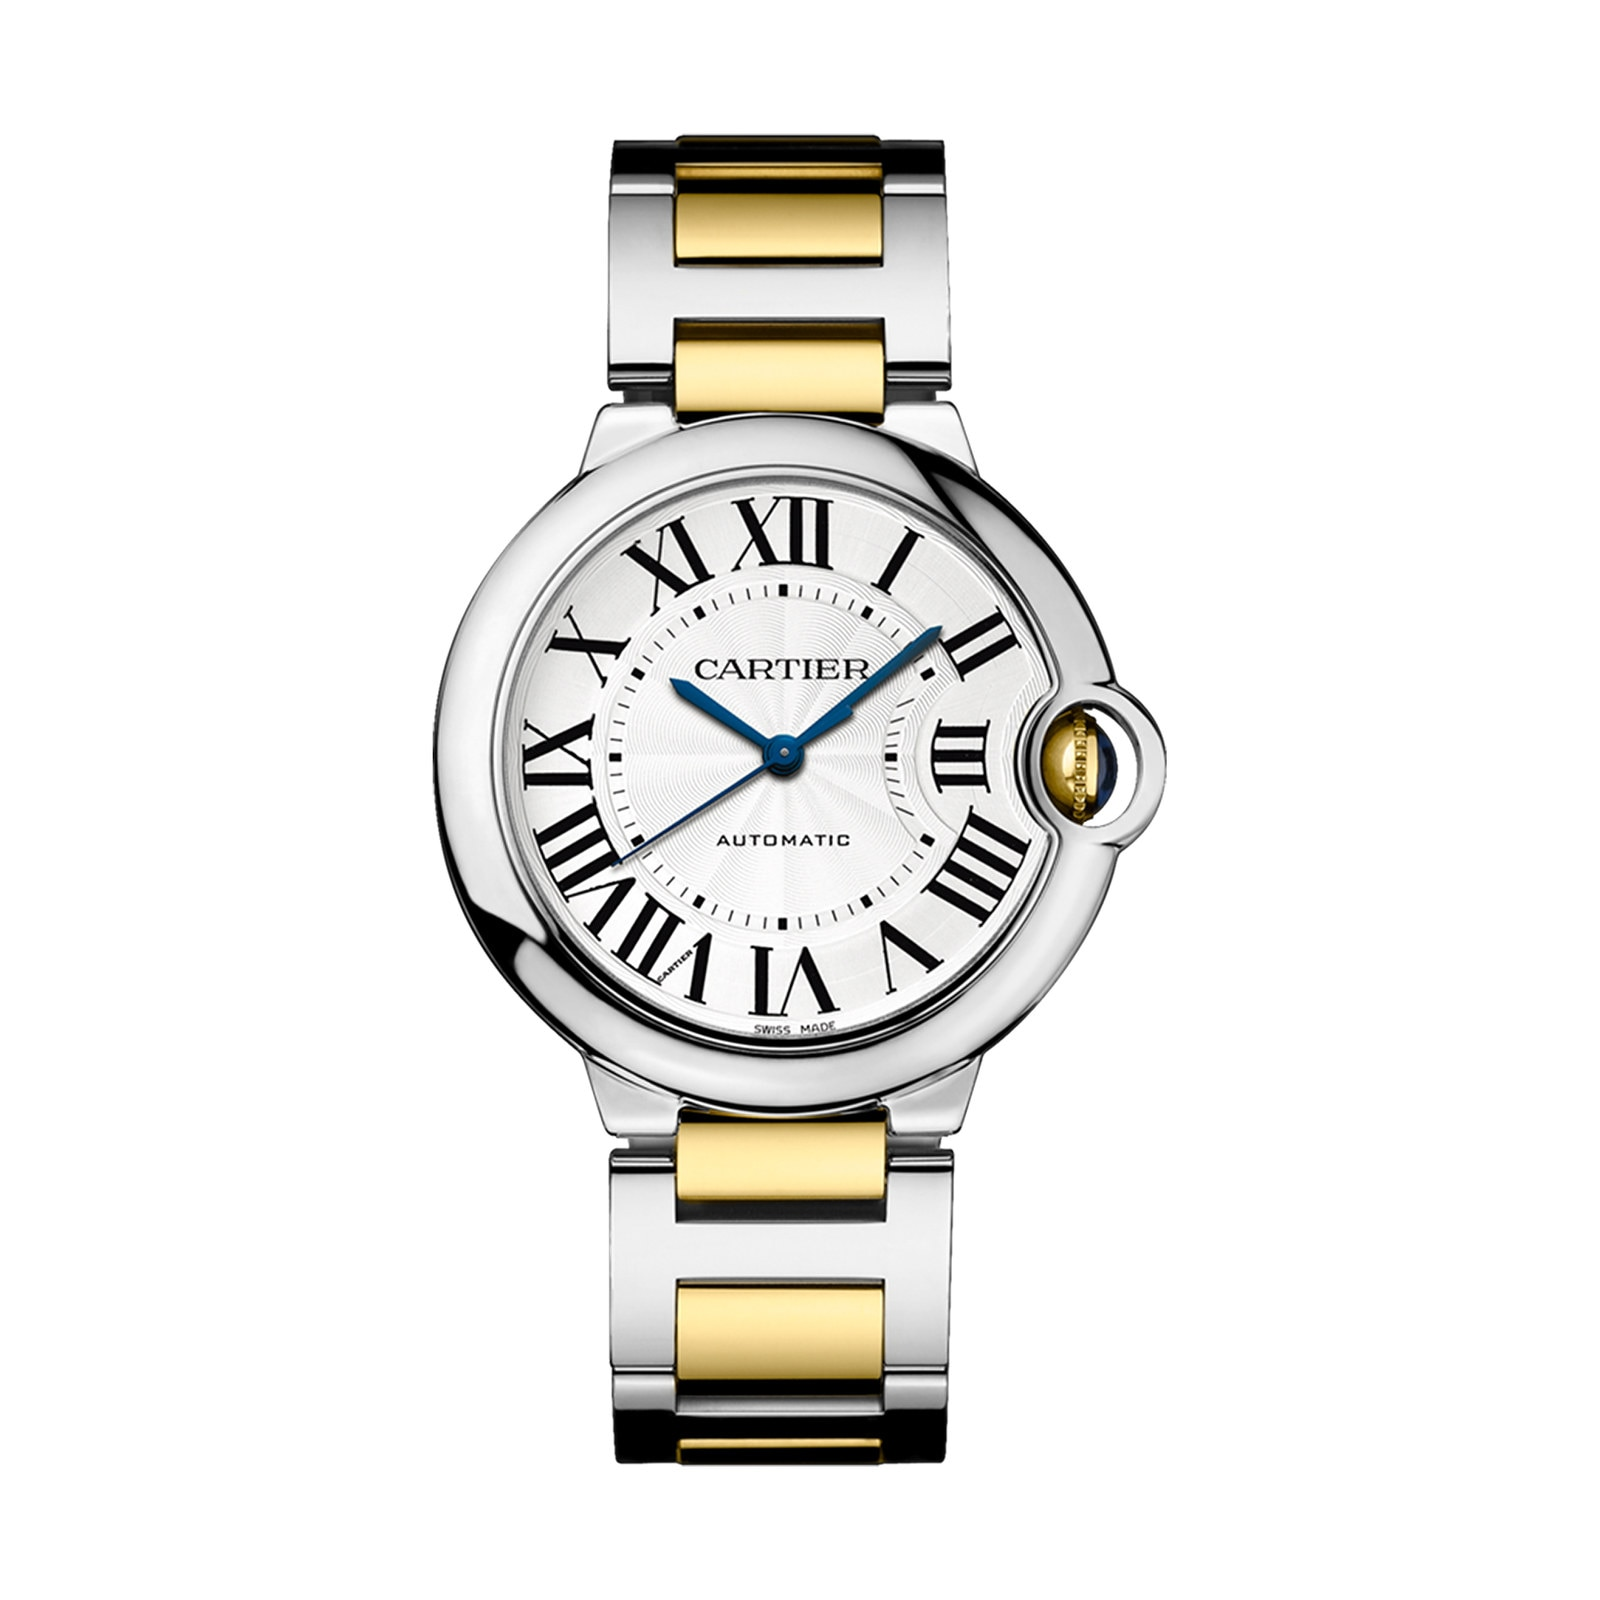 Cartier Ballon Bleu de Cartier watch 36 mm, 18K gold and steel